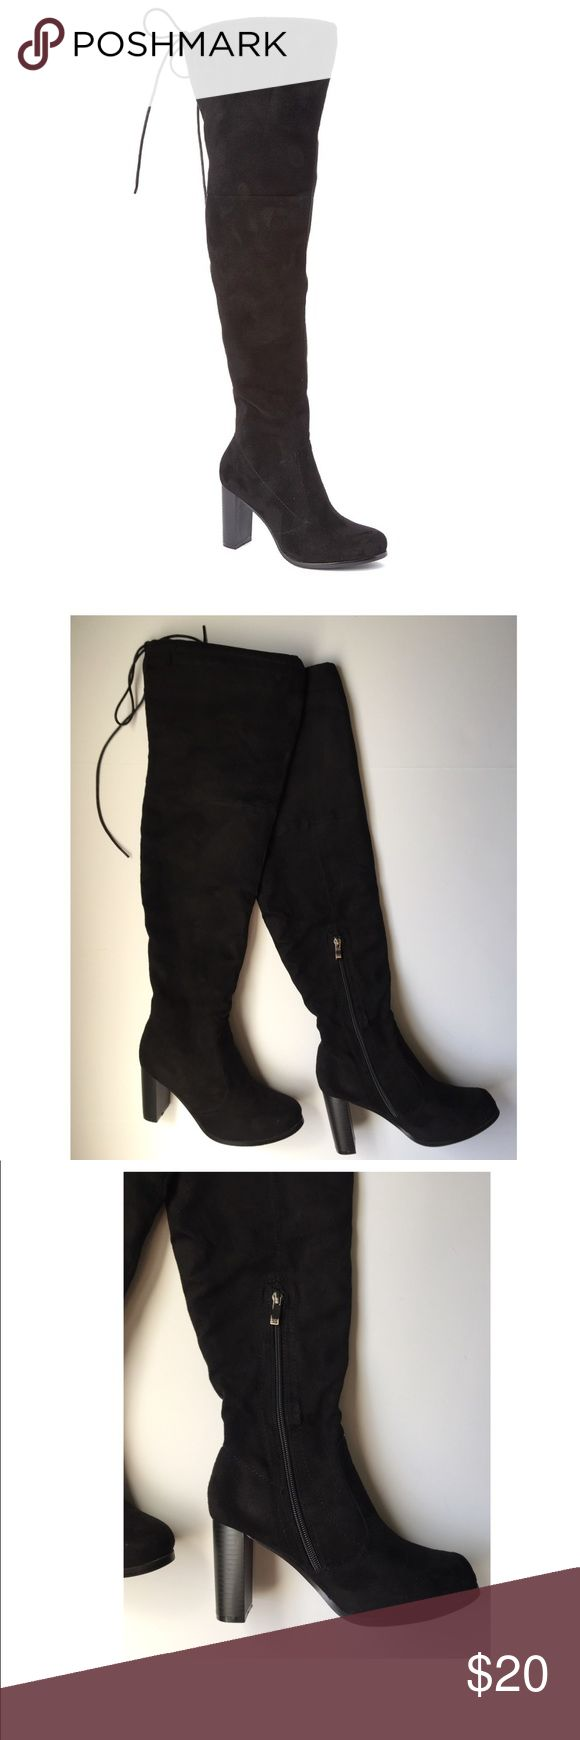 Black faux suede tie back over the knee boots⚡️ -Black soft faux suede boots by Bucco with 3.5in. heel -Worn a few times, in overall EUC -Zip inside closures, back tie drawstrings at top with faux leather strip at inside top so boots stay up -24in. shaft, 18in. measured around top Shoes Over the Knee Boots